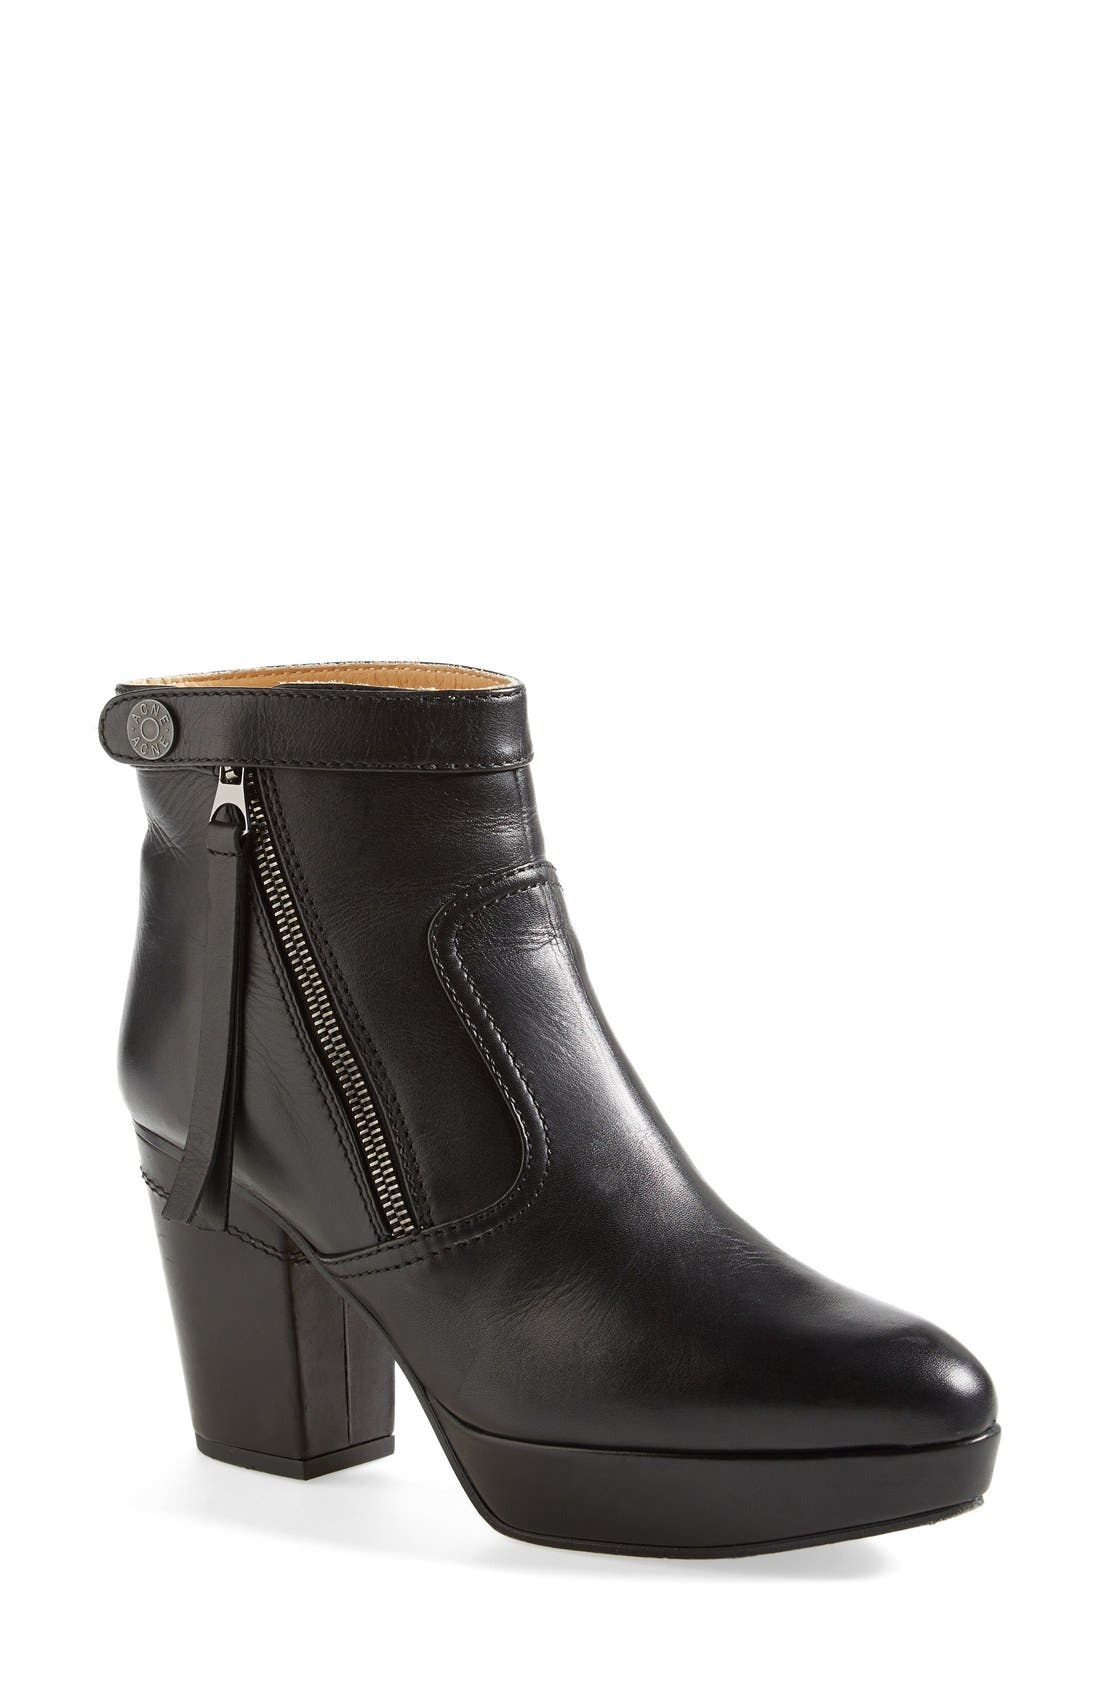 Main Image - Acne Studios 'Track' Platform Ankle Boot (Women)